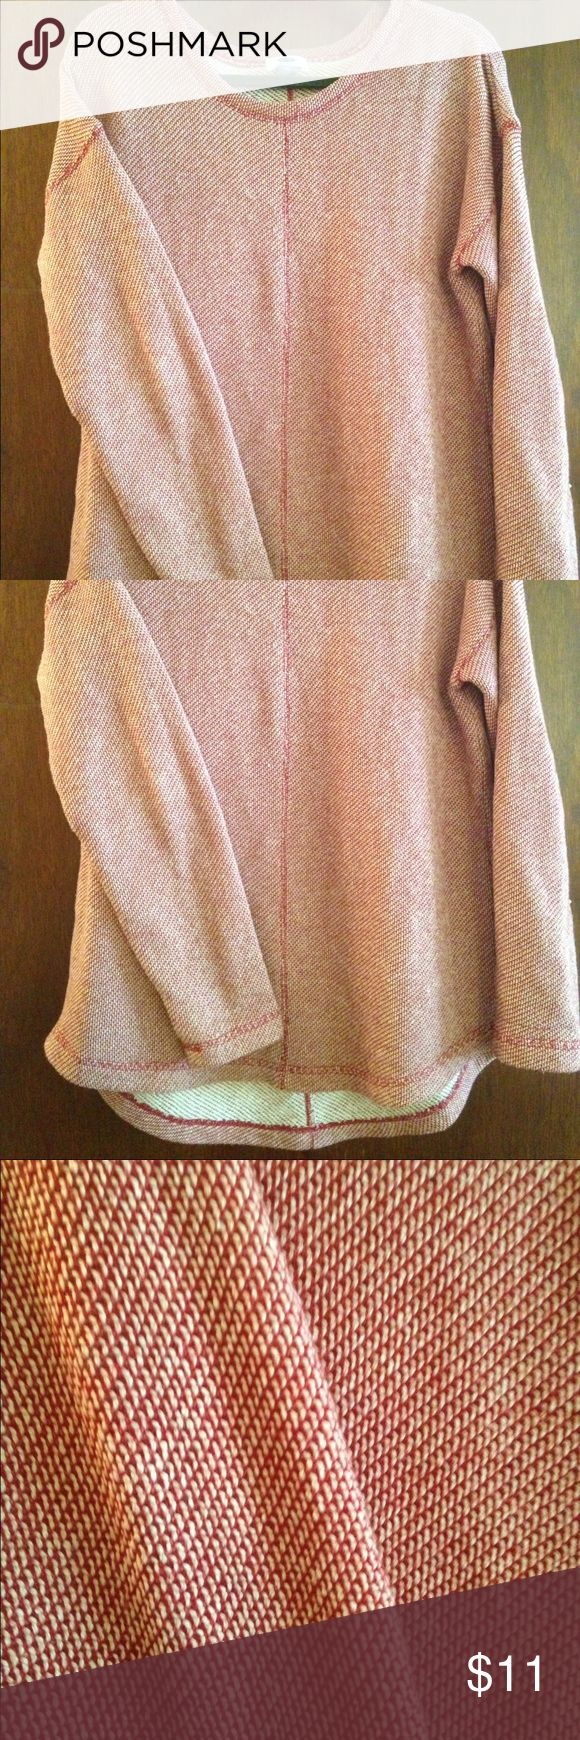 """Old Navy Tunic Top Very cozy Tunic top. Last two pics show color best. Flattering scoop neck that is mirrored at bottom. Cute with jeans or leggings and even cute under a vest! (5'6"""", 135 lbs: fits loose) Old Navy Sweaters Crew & Scoop Necks"""